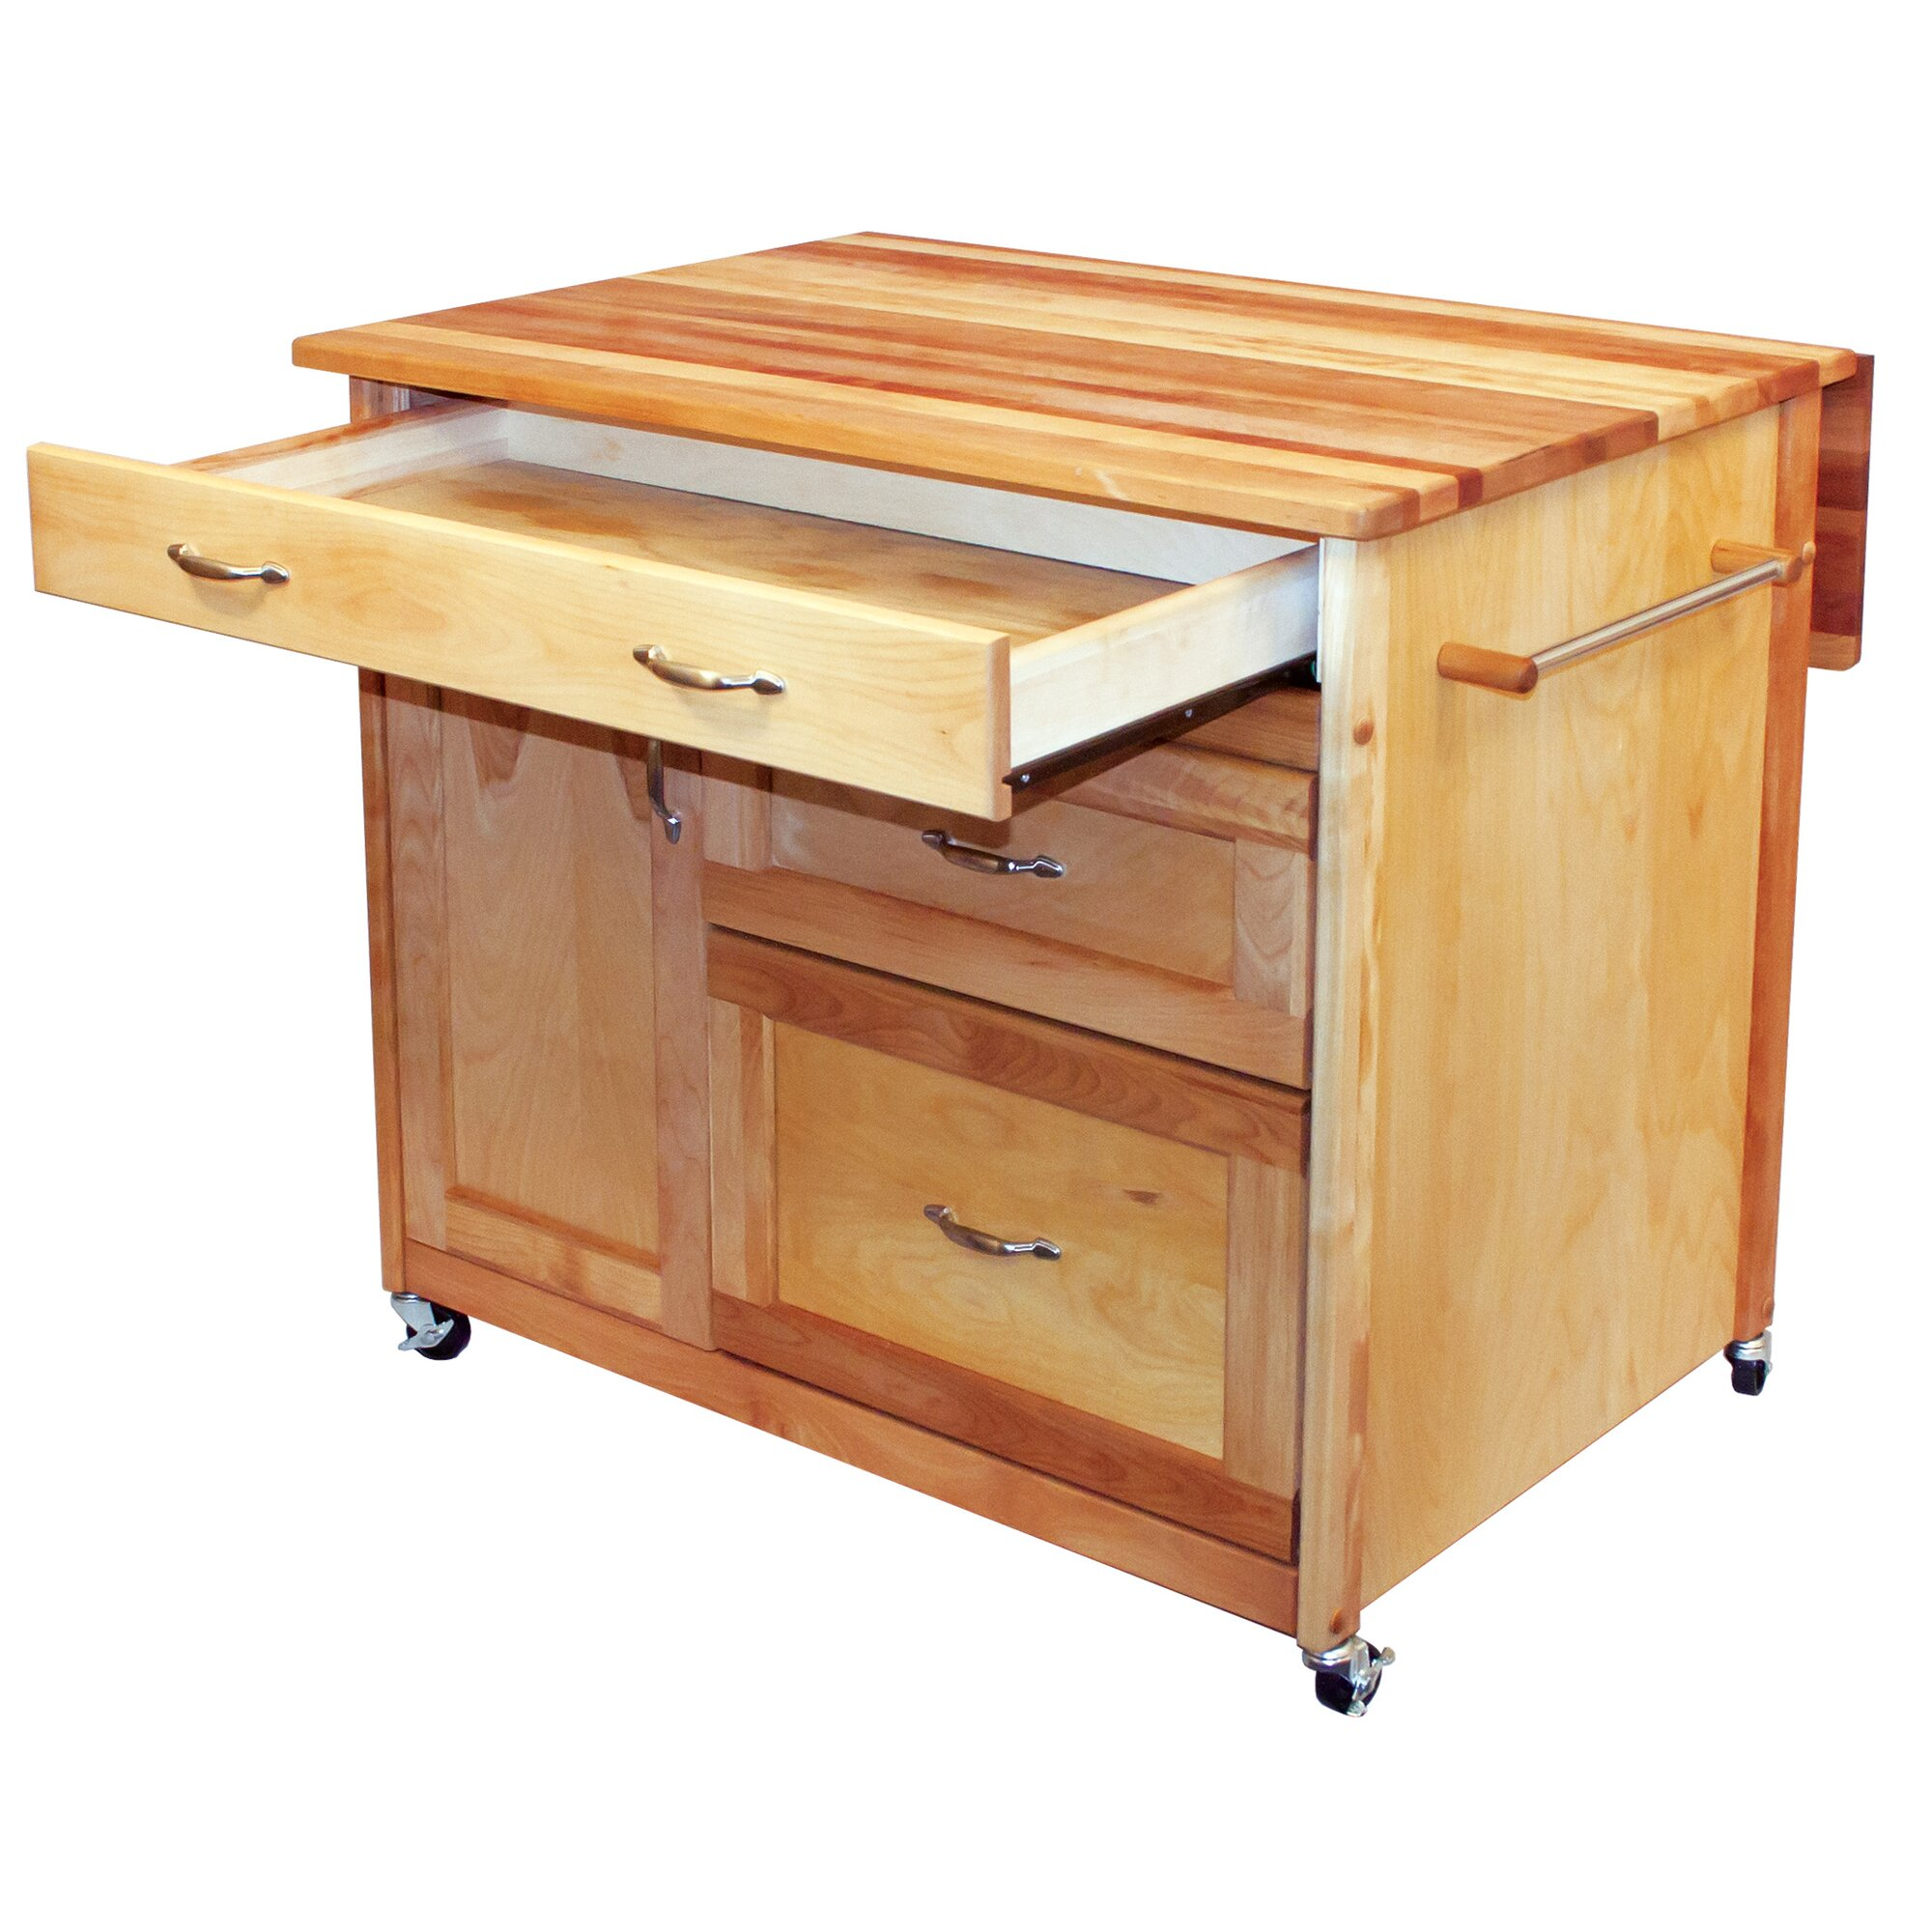 Haleakala Kitchen Island With Butcher Block Top : Catskill Craftsmen Kitchen Island with Butcher Block Top & Reviews Wayfair